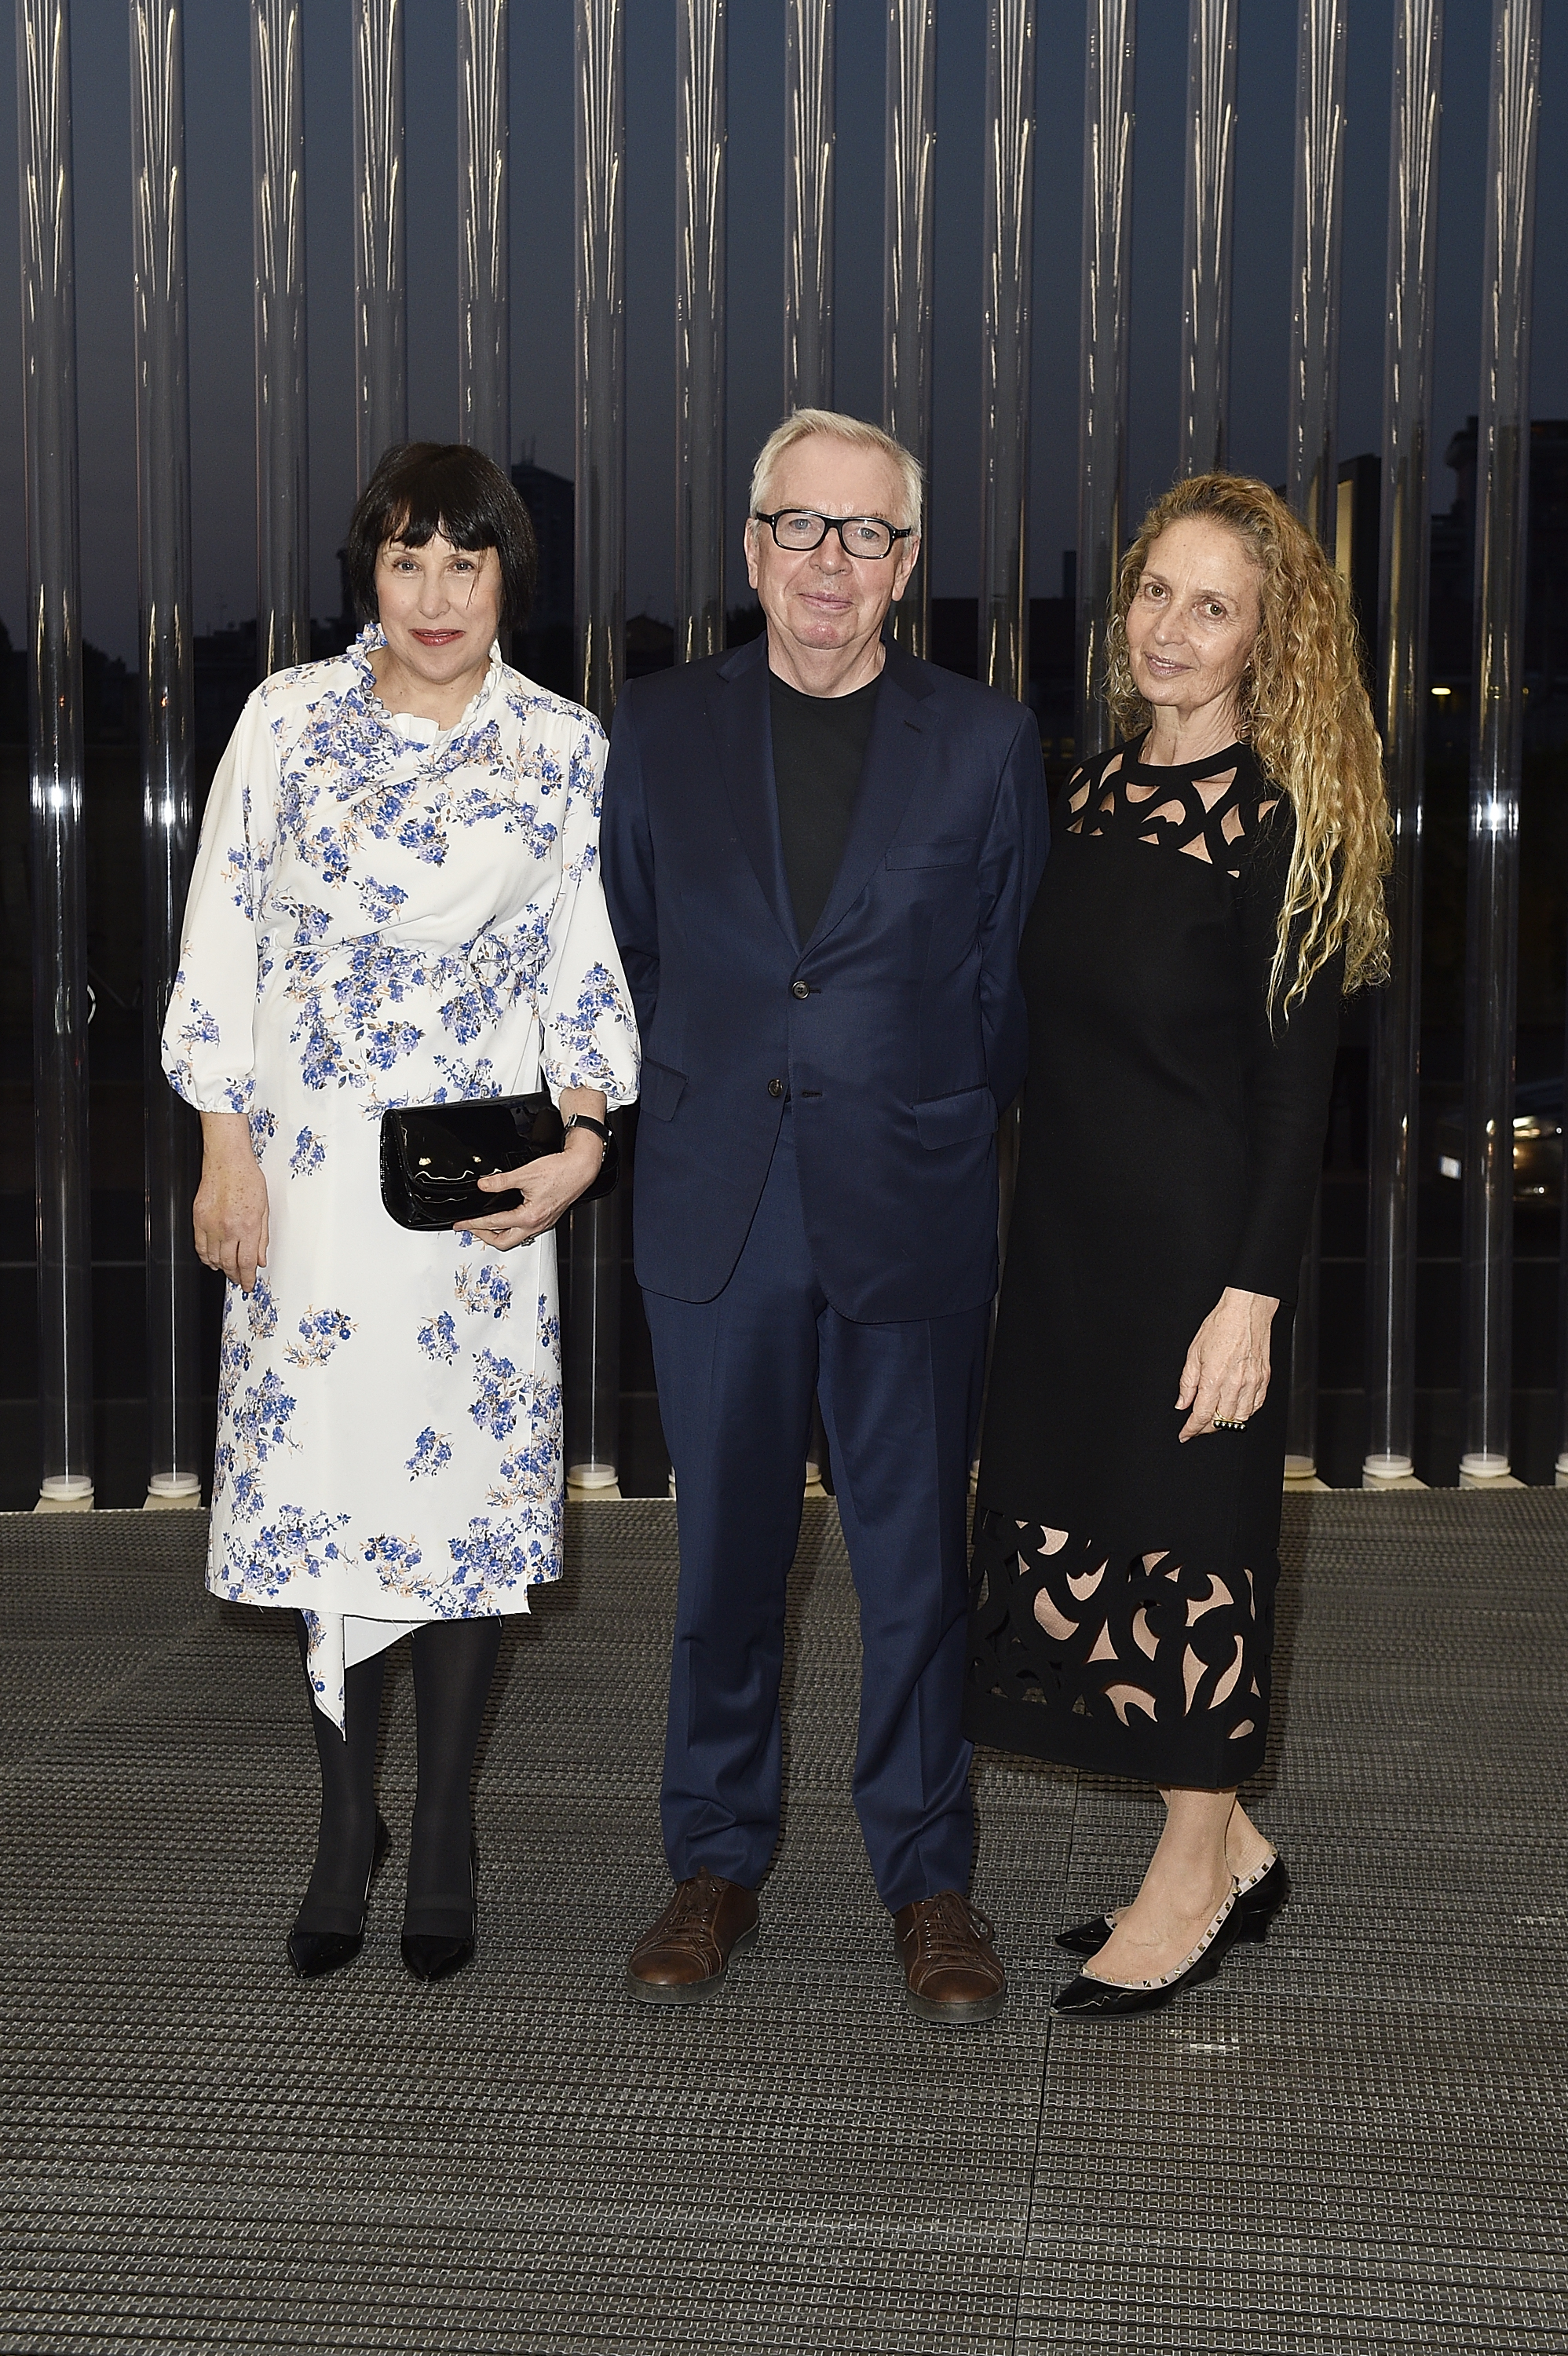 Alice Rawsthorn, David Chipperfield et Evelyn Chipperfield à l'inauguration de la Torre à la Fondazione Prada le 18 avril 2018 à Milan, Italie. (Photo by Pietro D'Aprano/Getty Images for Fondazione Prada)